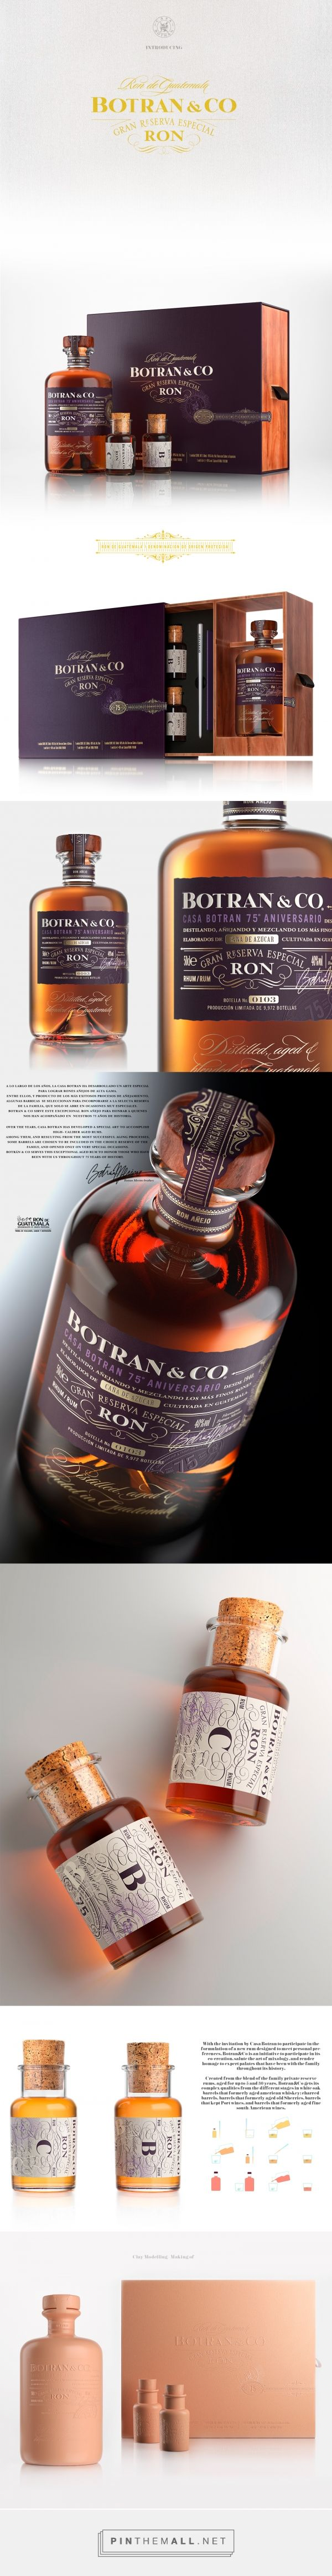 Botran & Co Rum Packaging by Marco Serena | Fivestar Branding Agency – Design and Branding Agency & Curated Inspiration Gallery